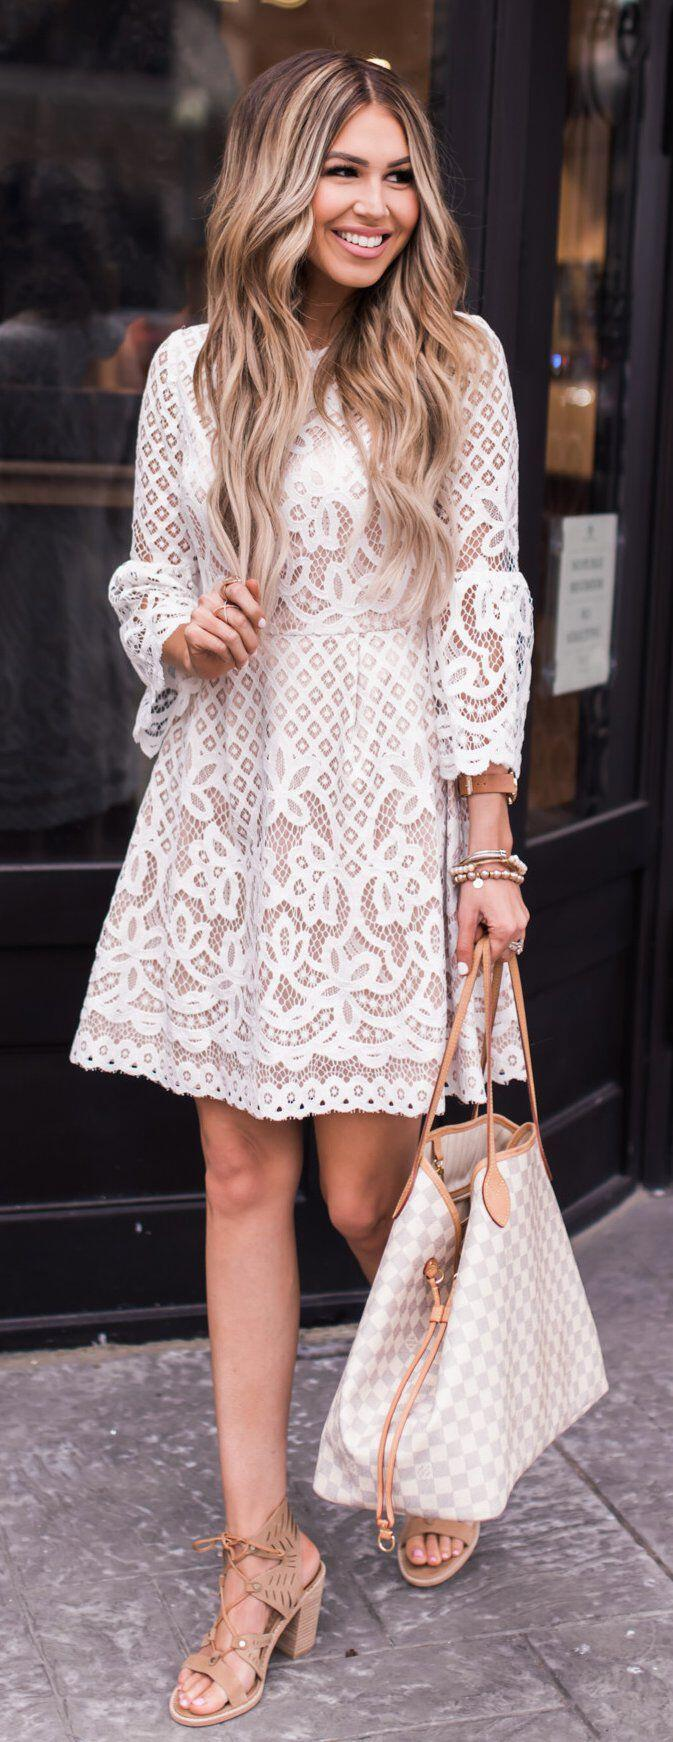 7ec89a7de83 14 inspiring white lace dress outfits for all seasons - Page 3 of 14 ...